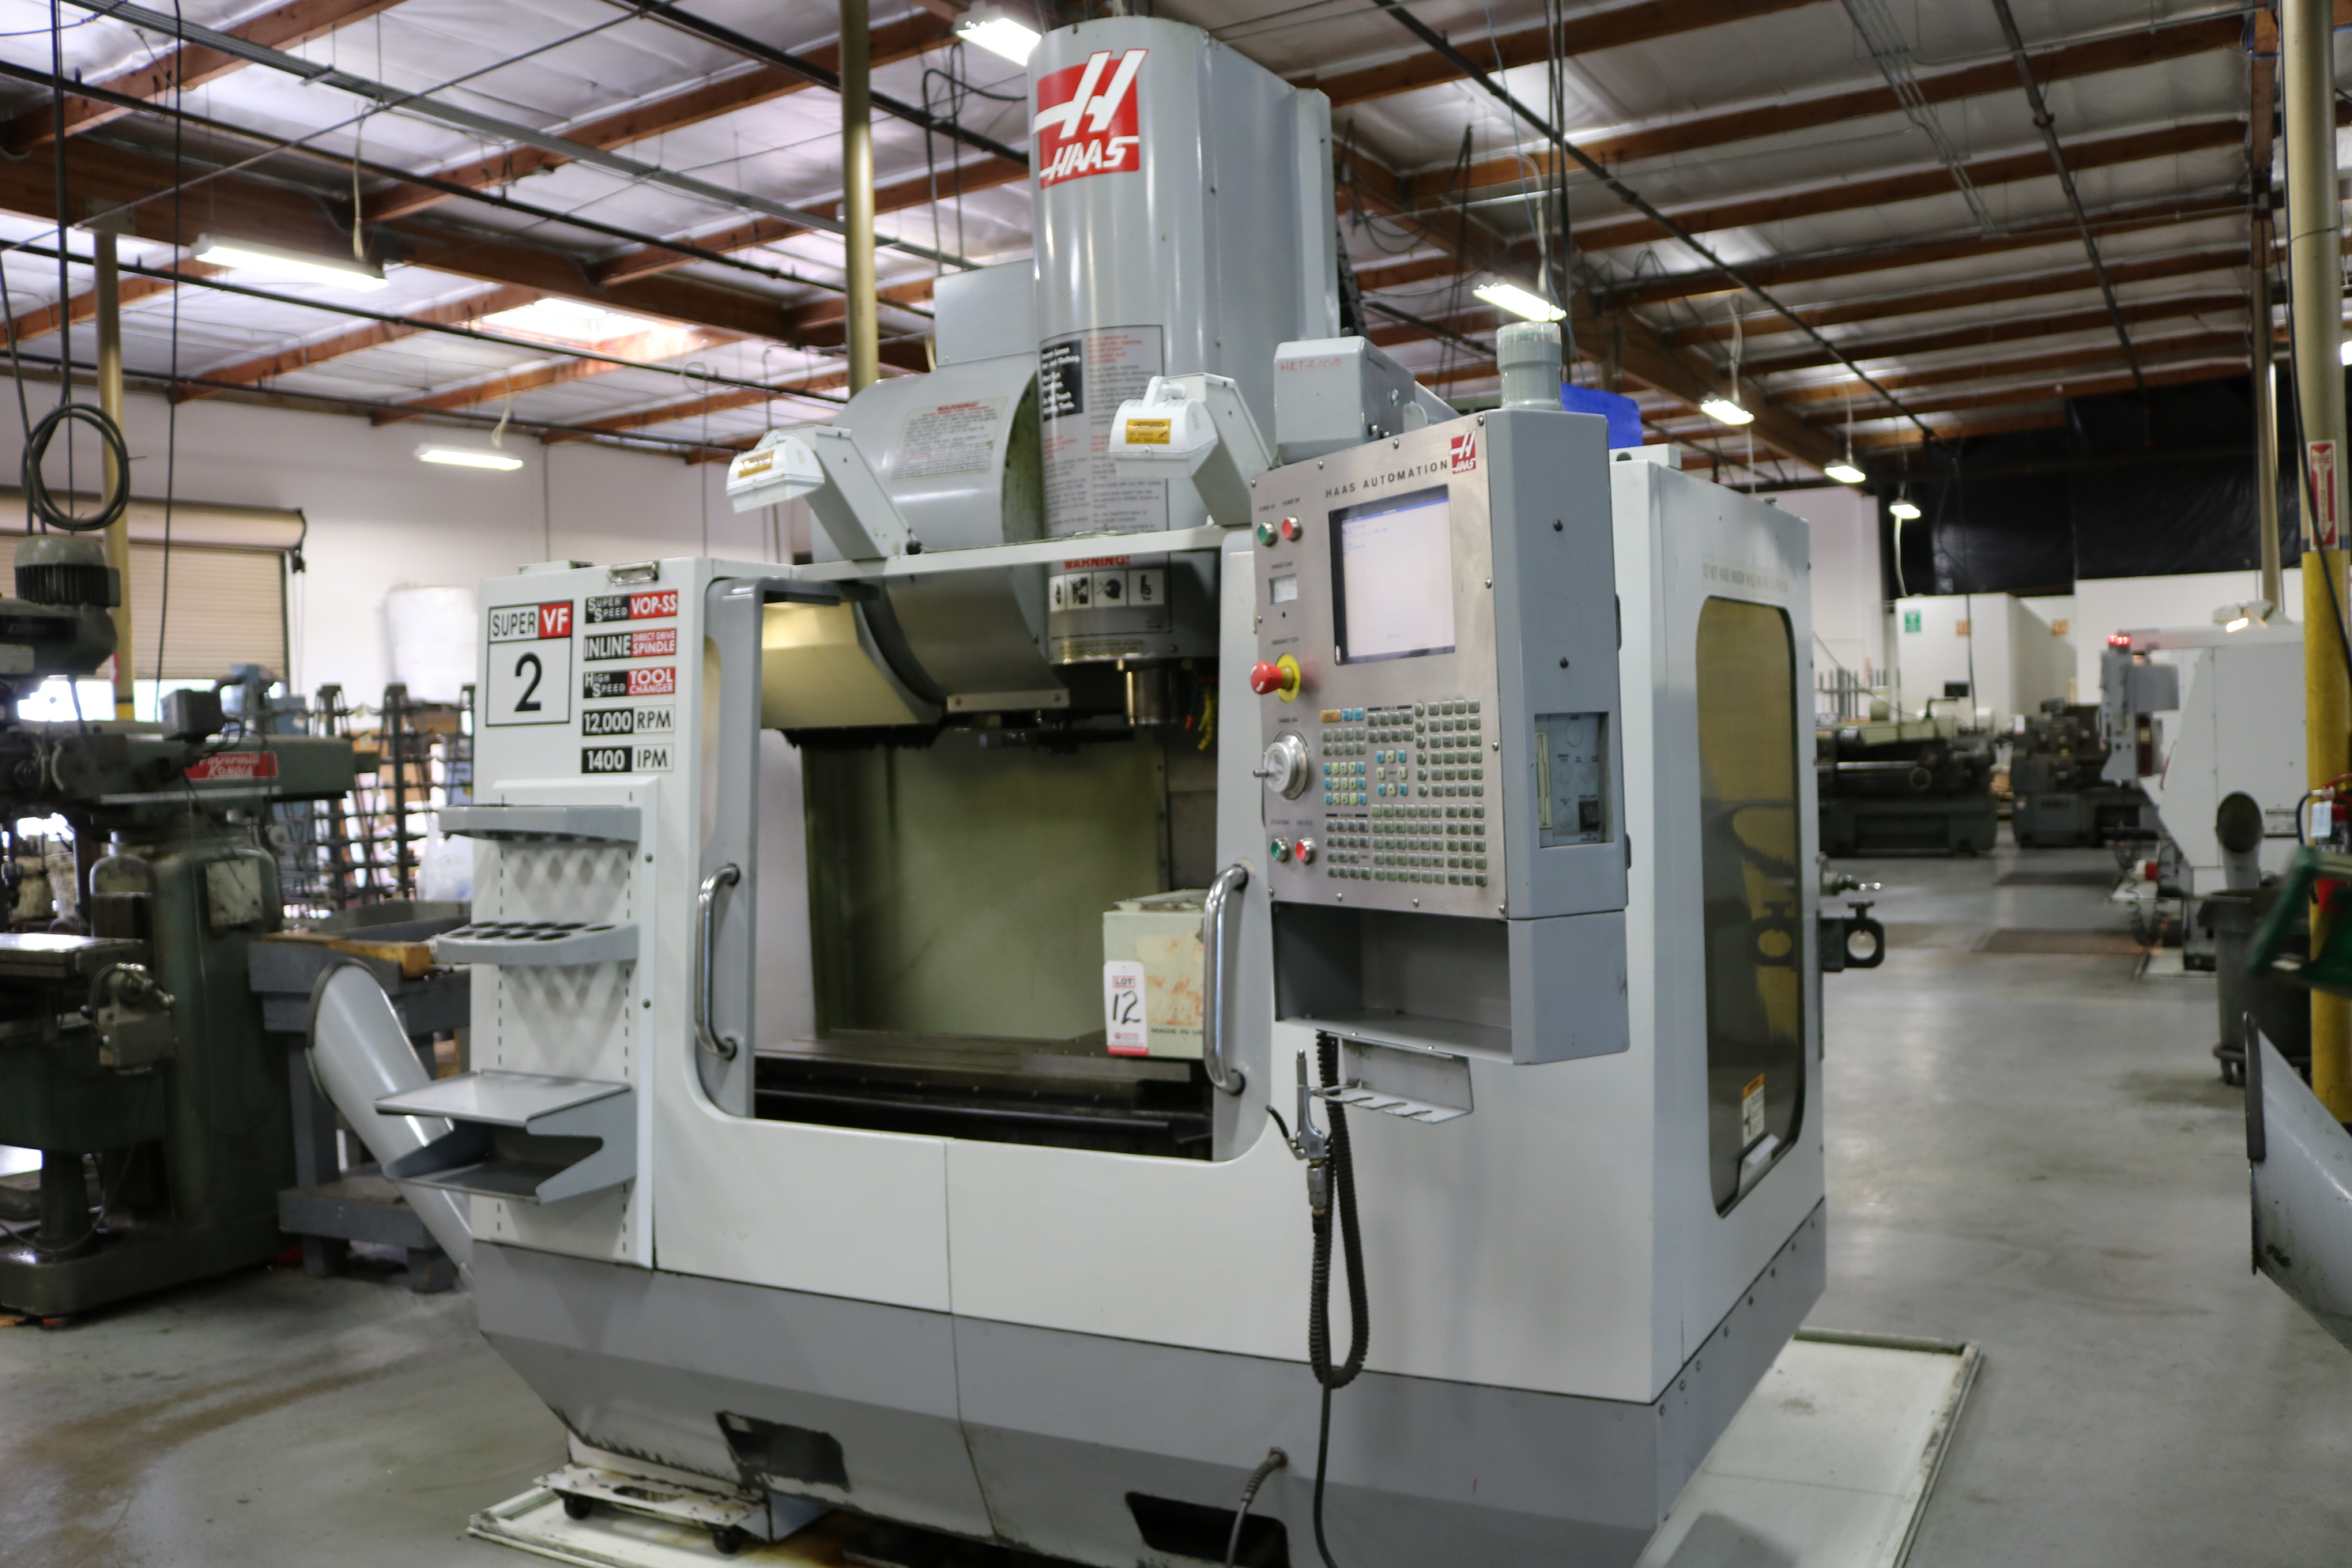 "Lot 11 - 2005 HAAS VF-2SS CNC VERTICAL MACHINING CENTER, TRAVELS: 30"" X 16"" X 20"", 36"" X 14"" TABLE, 12,000"